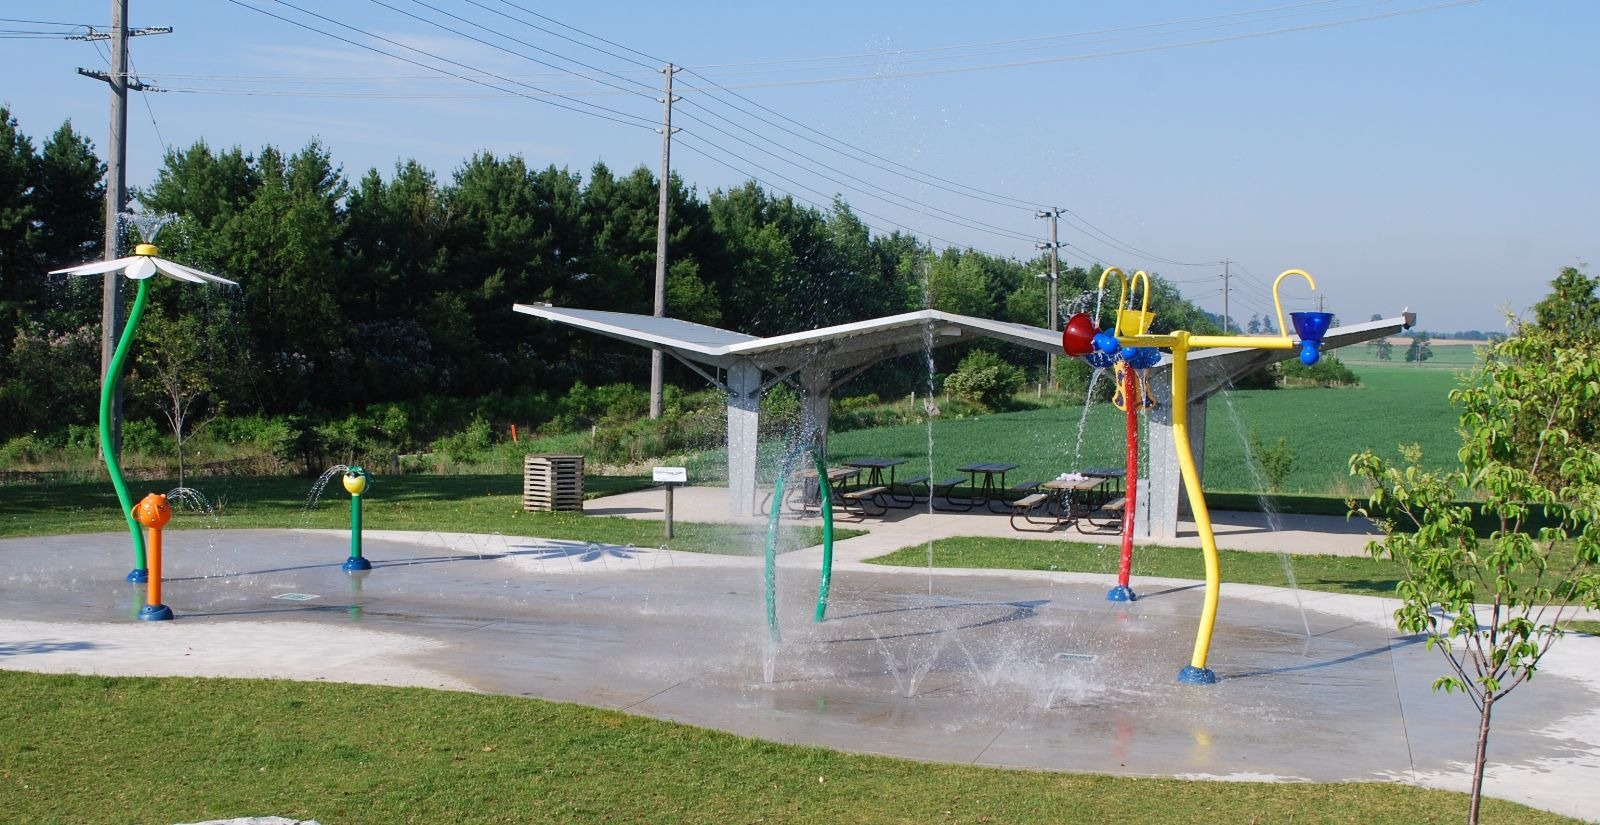 A photo of the splash pad at Rockmosa Park